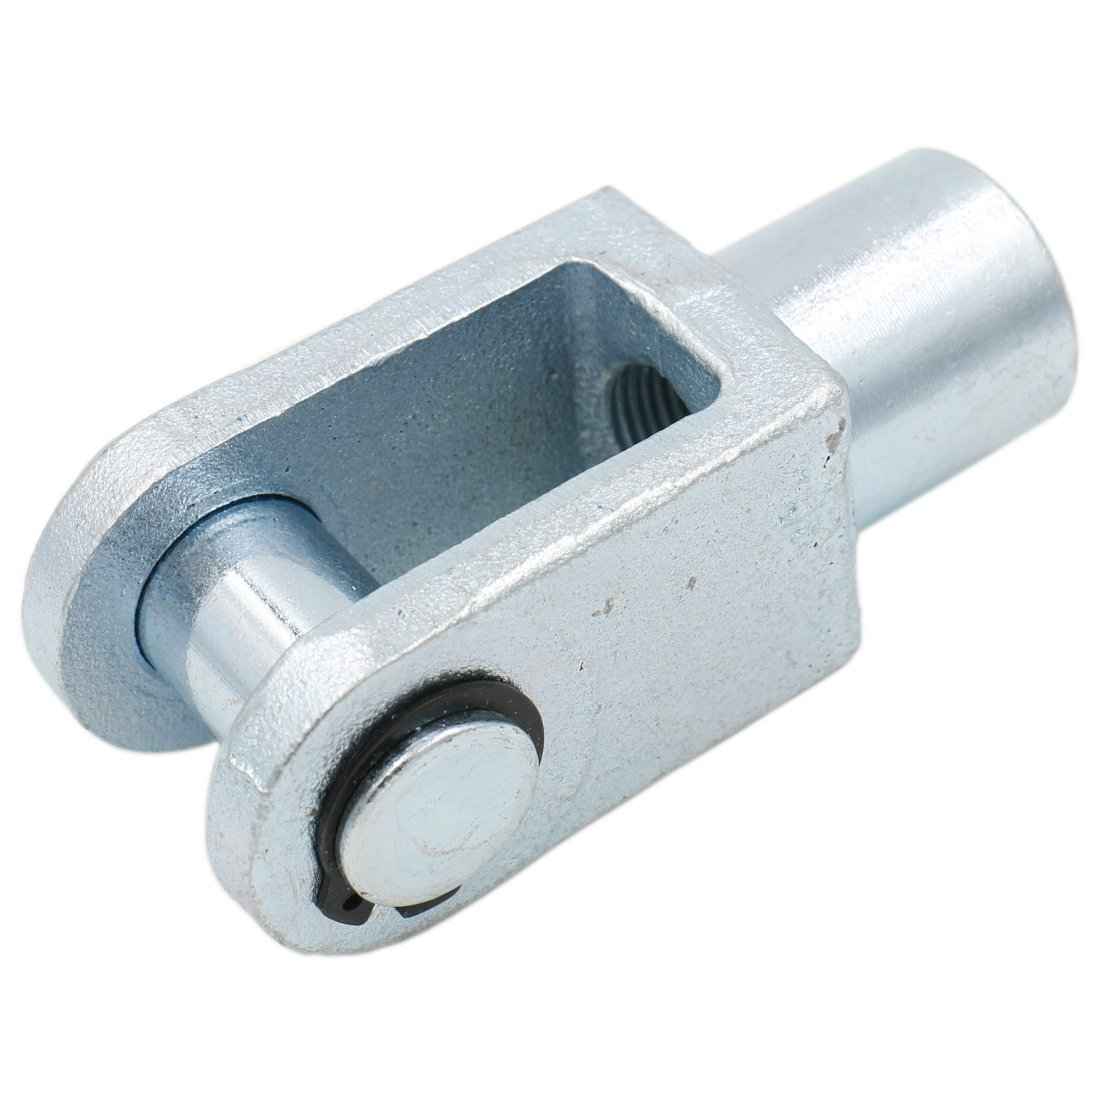 Baomain Foot flange CY-100 for foot mounting work with Pneumatic Standard Cylinder SC 100